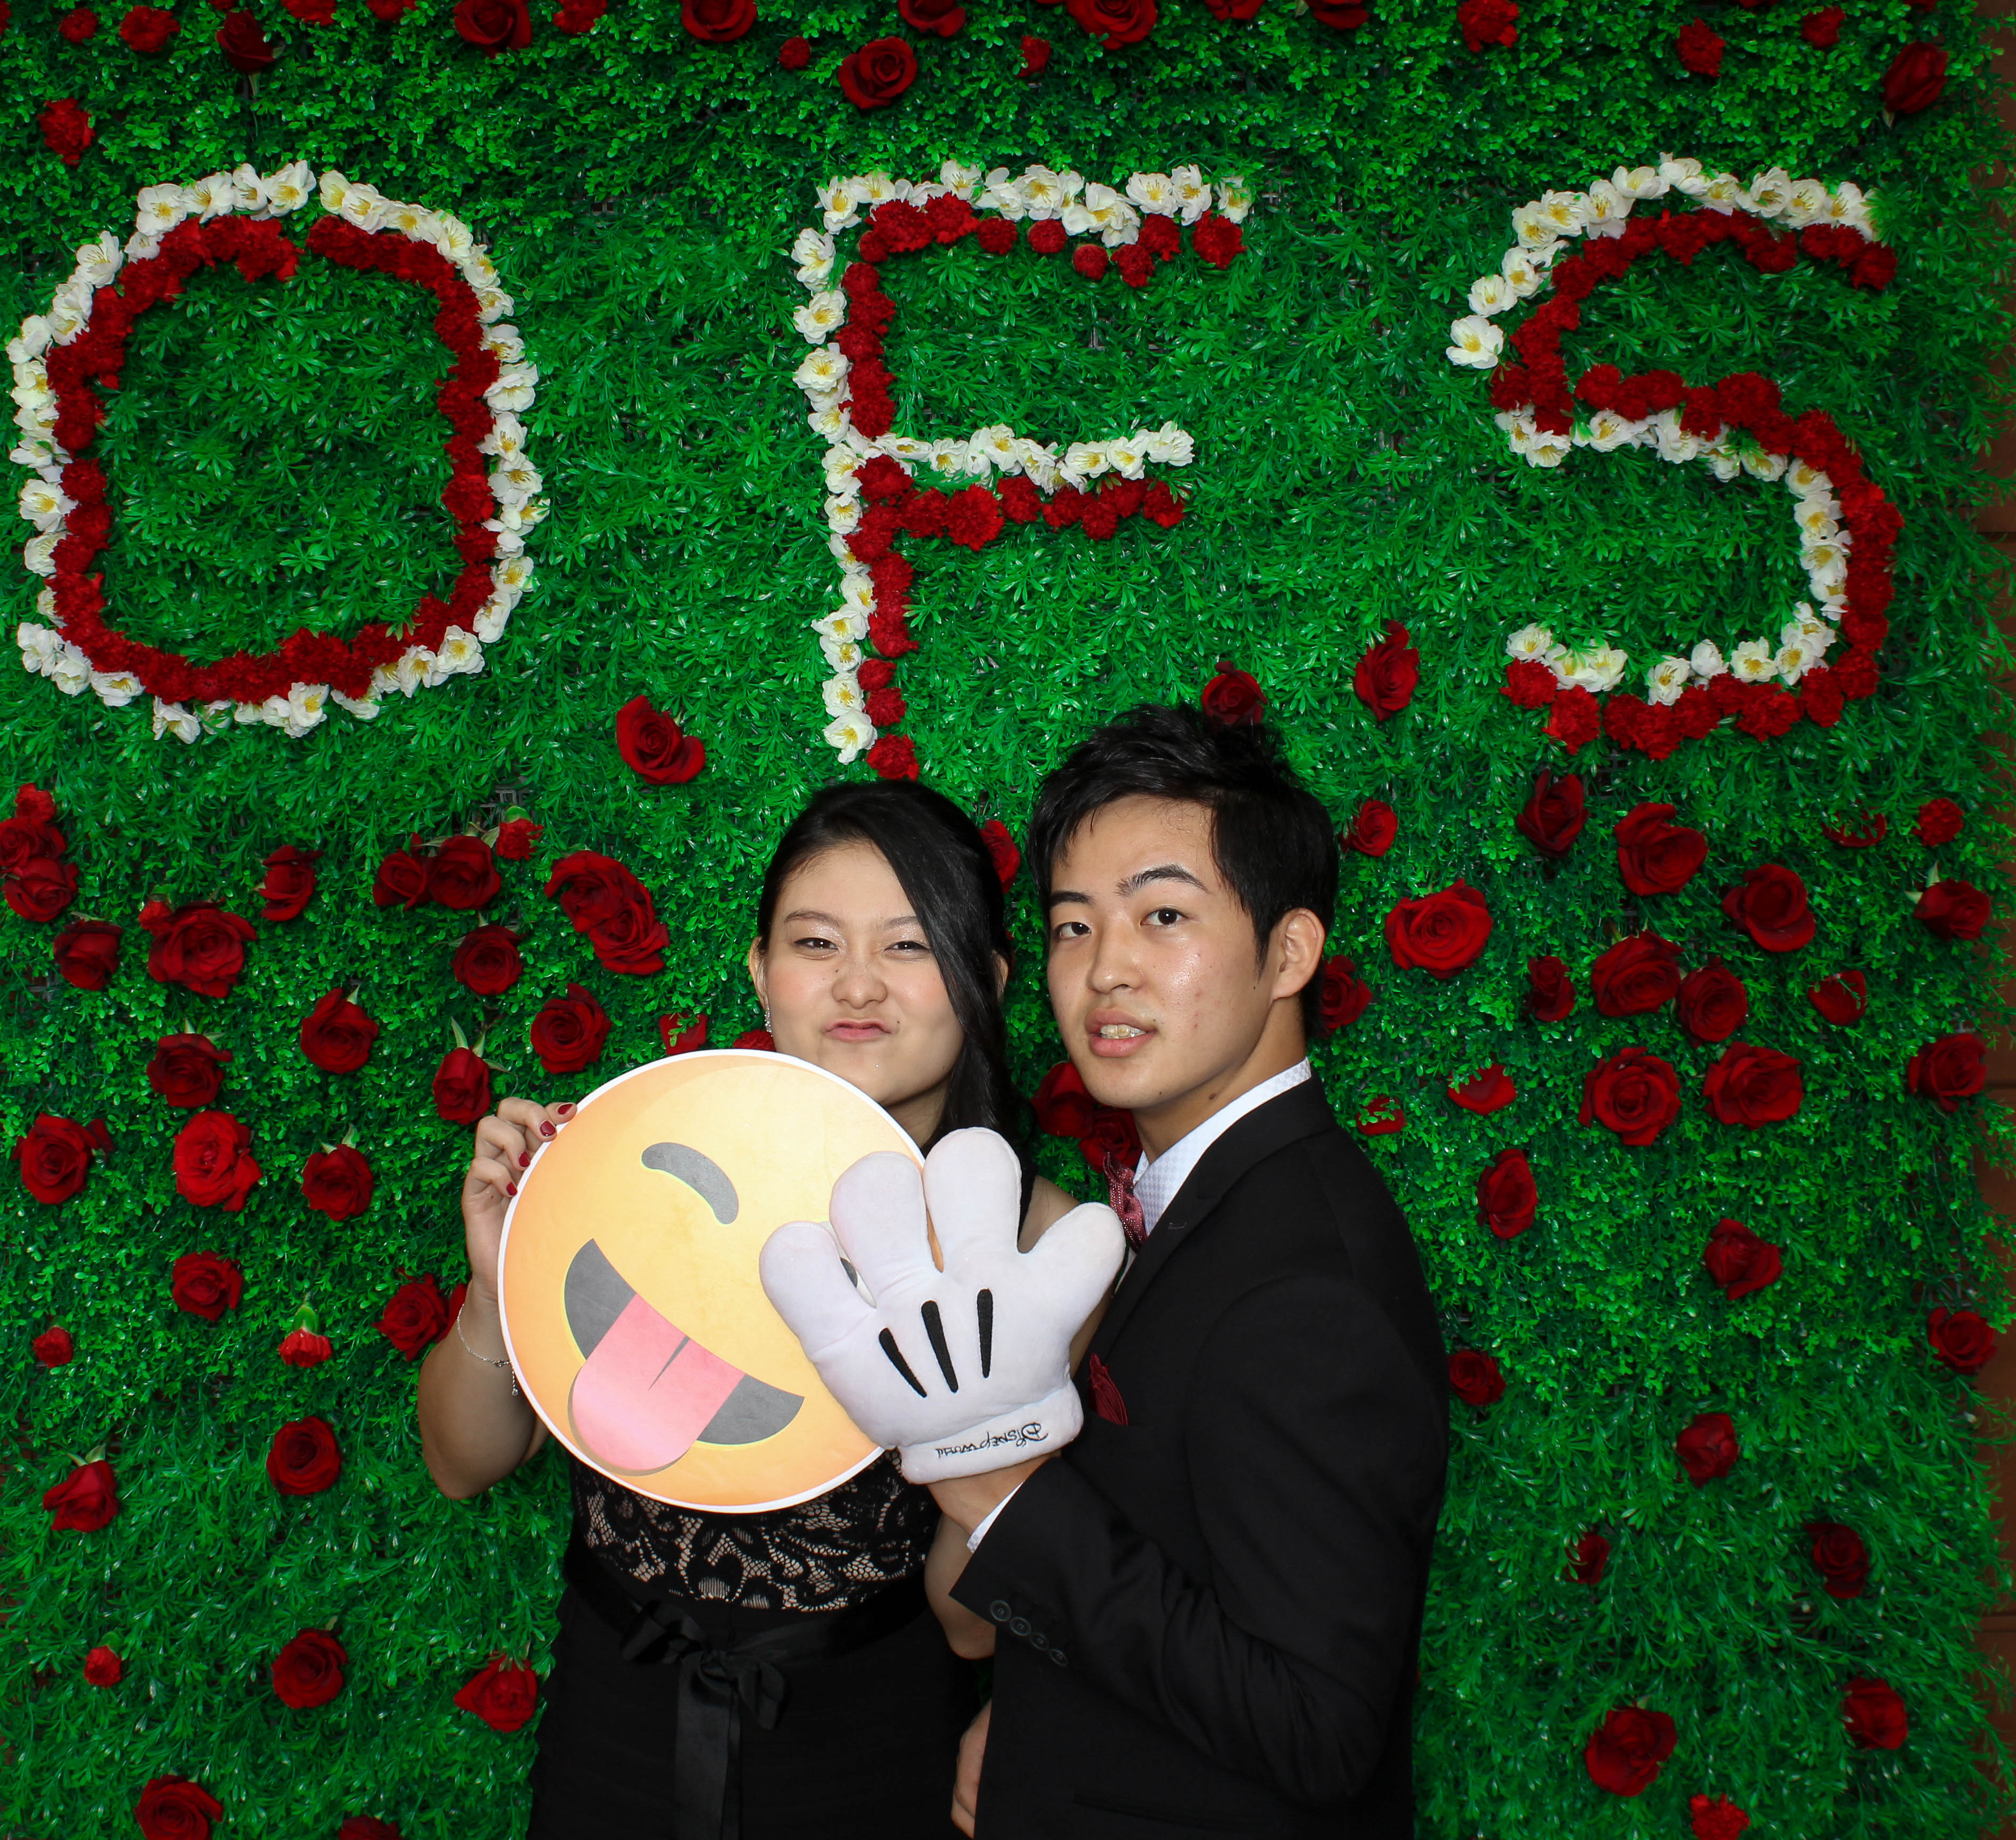 Photobooth sg ofs 2505 (114 of 215)